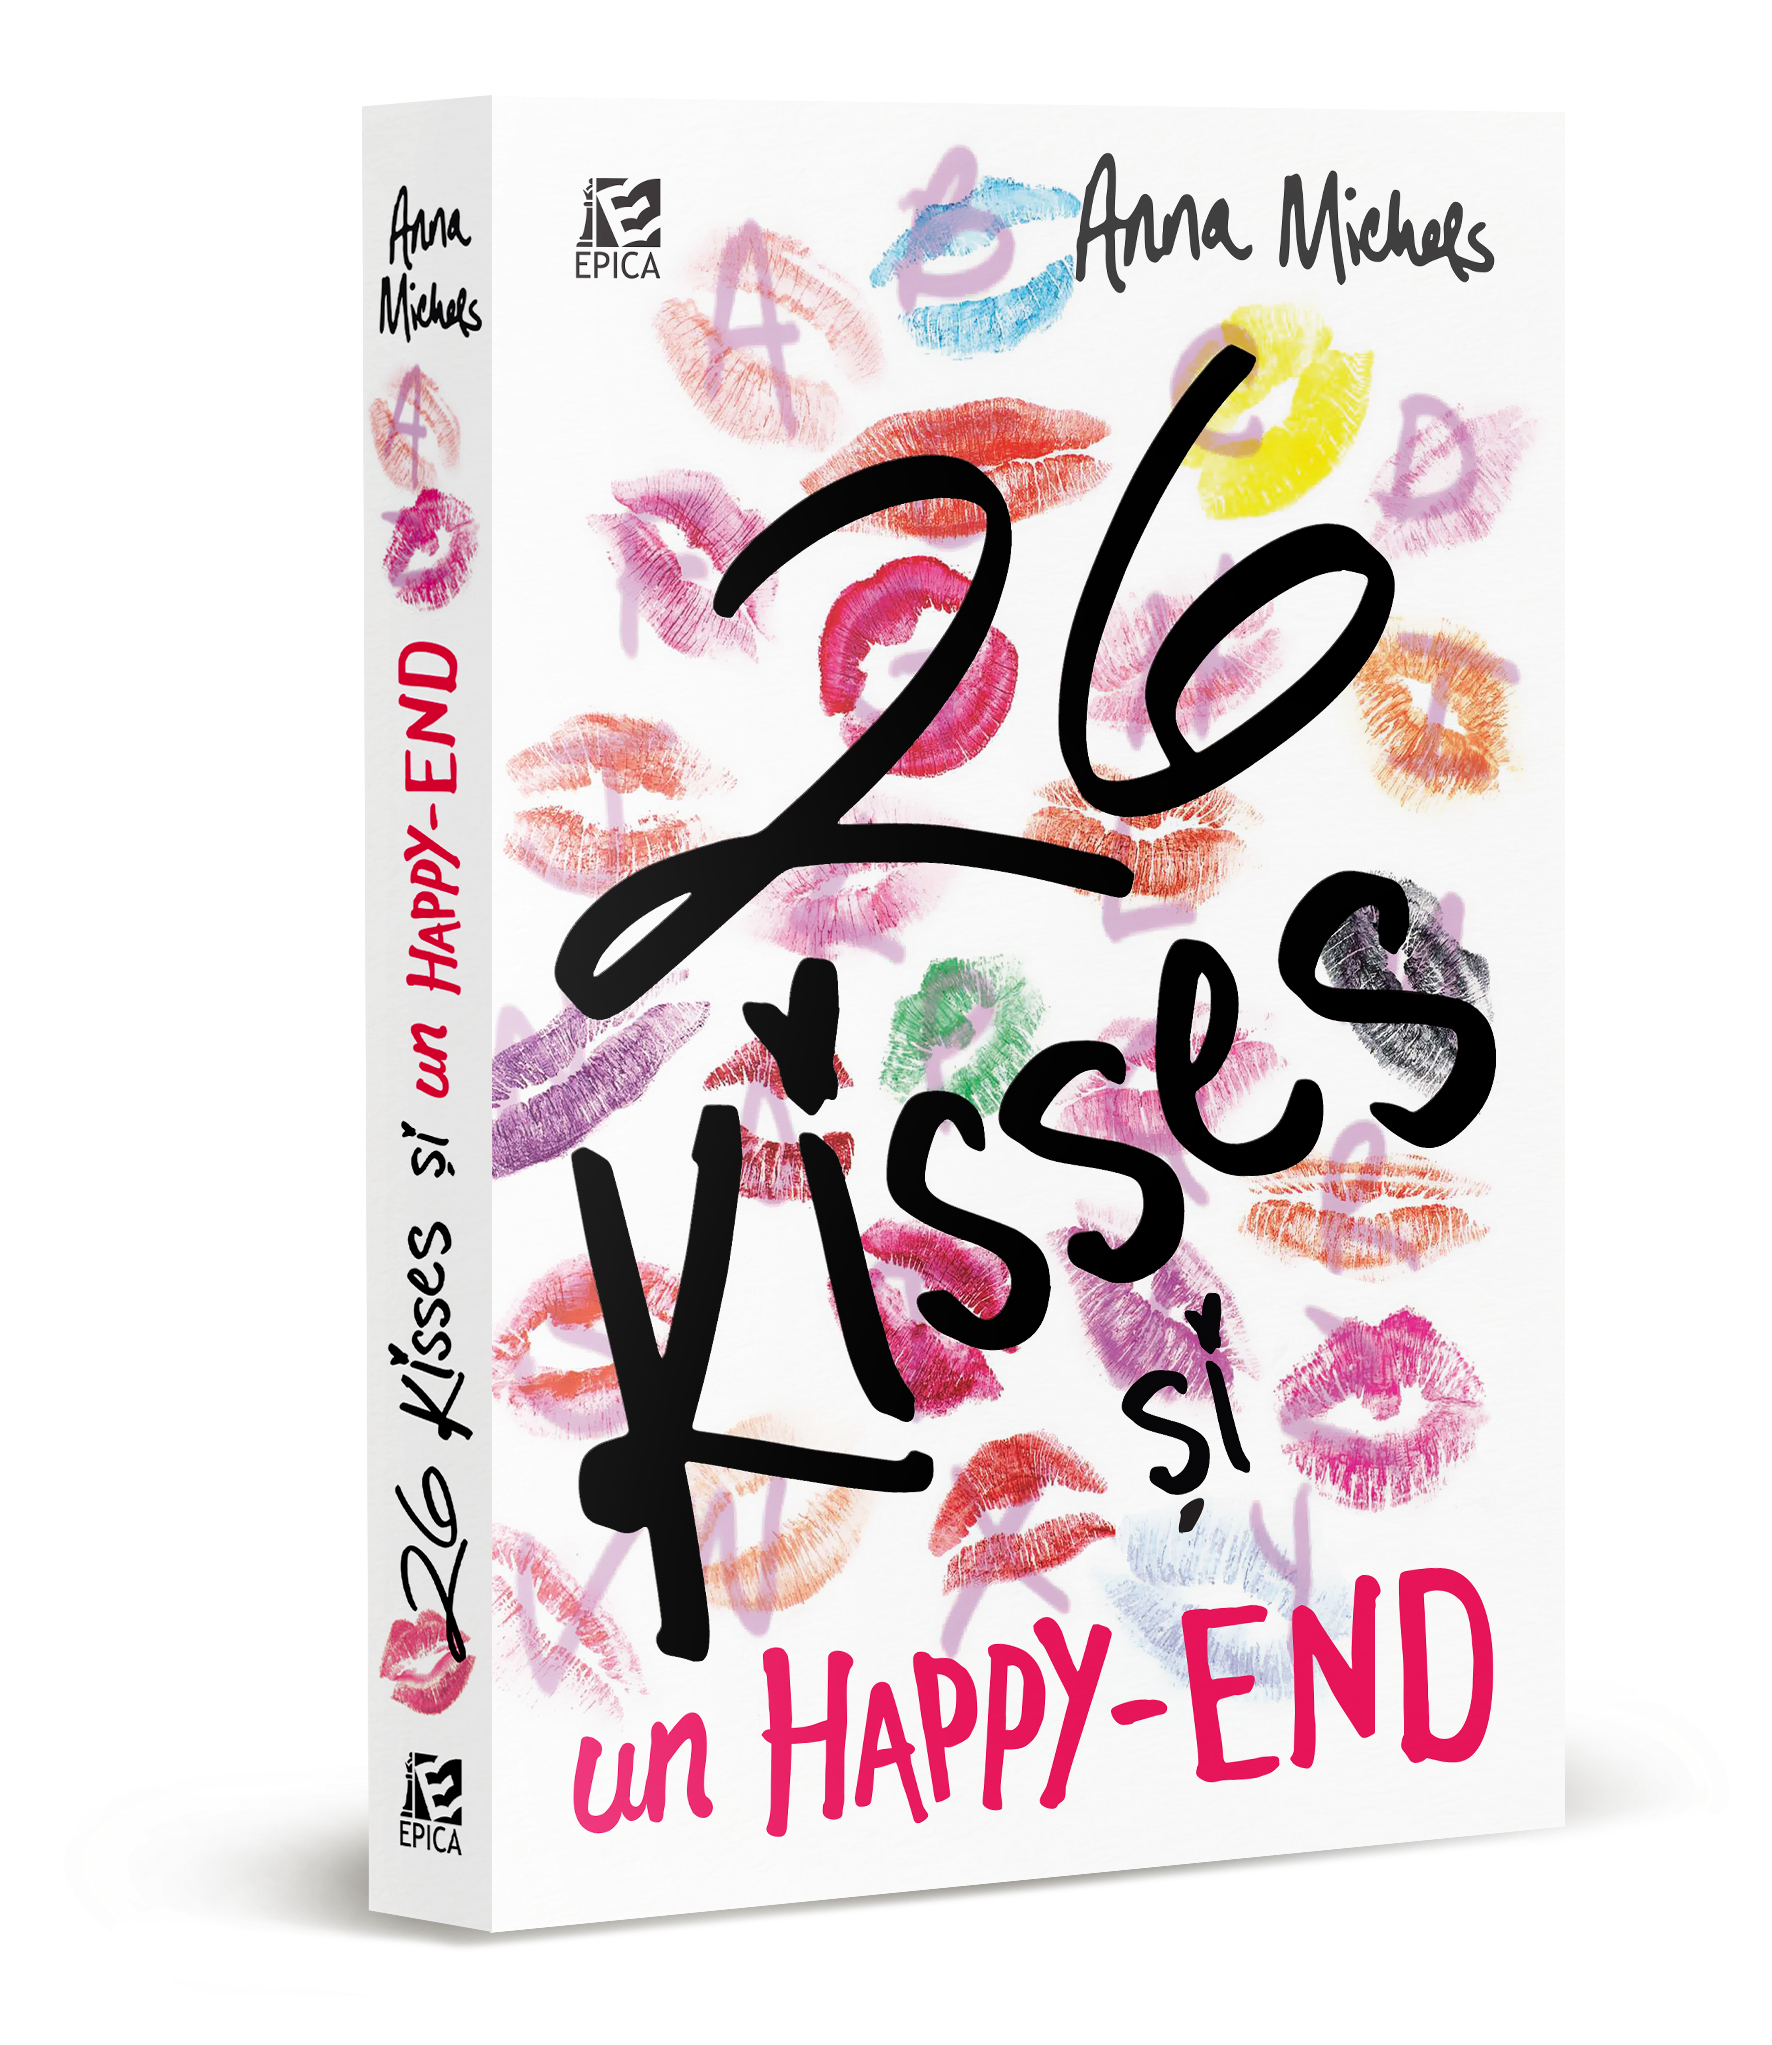 26 kisses și un happy-end